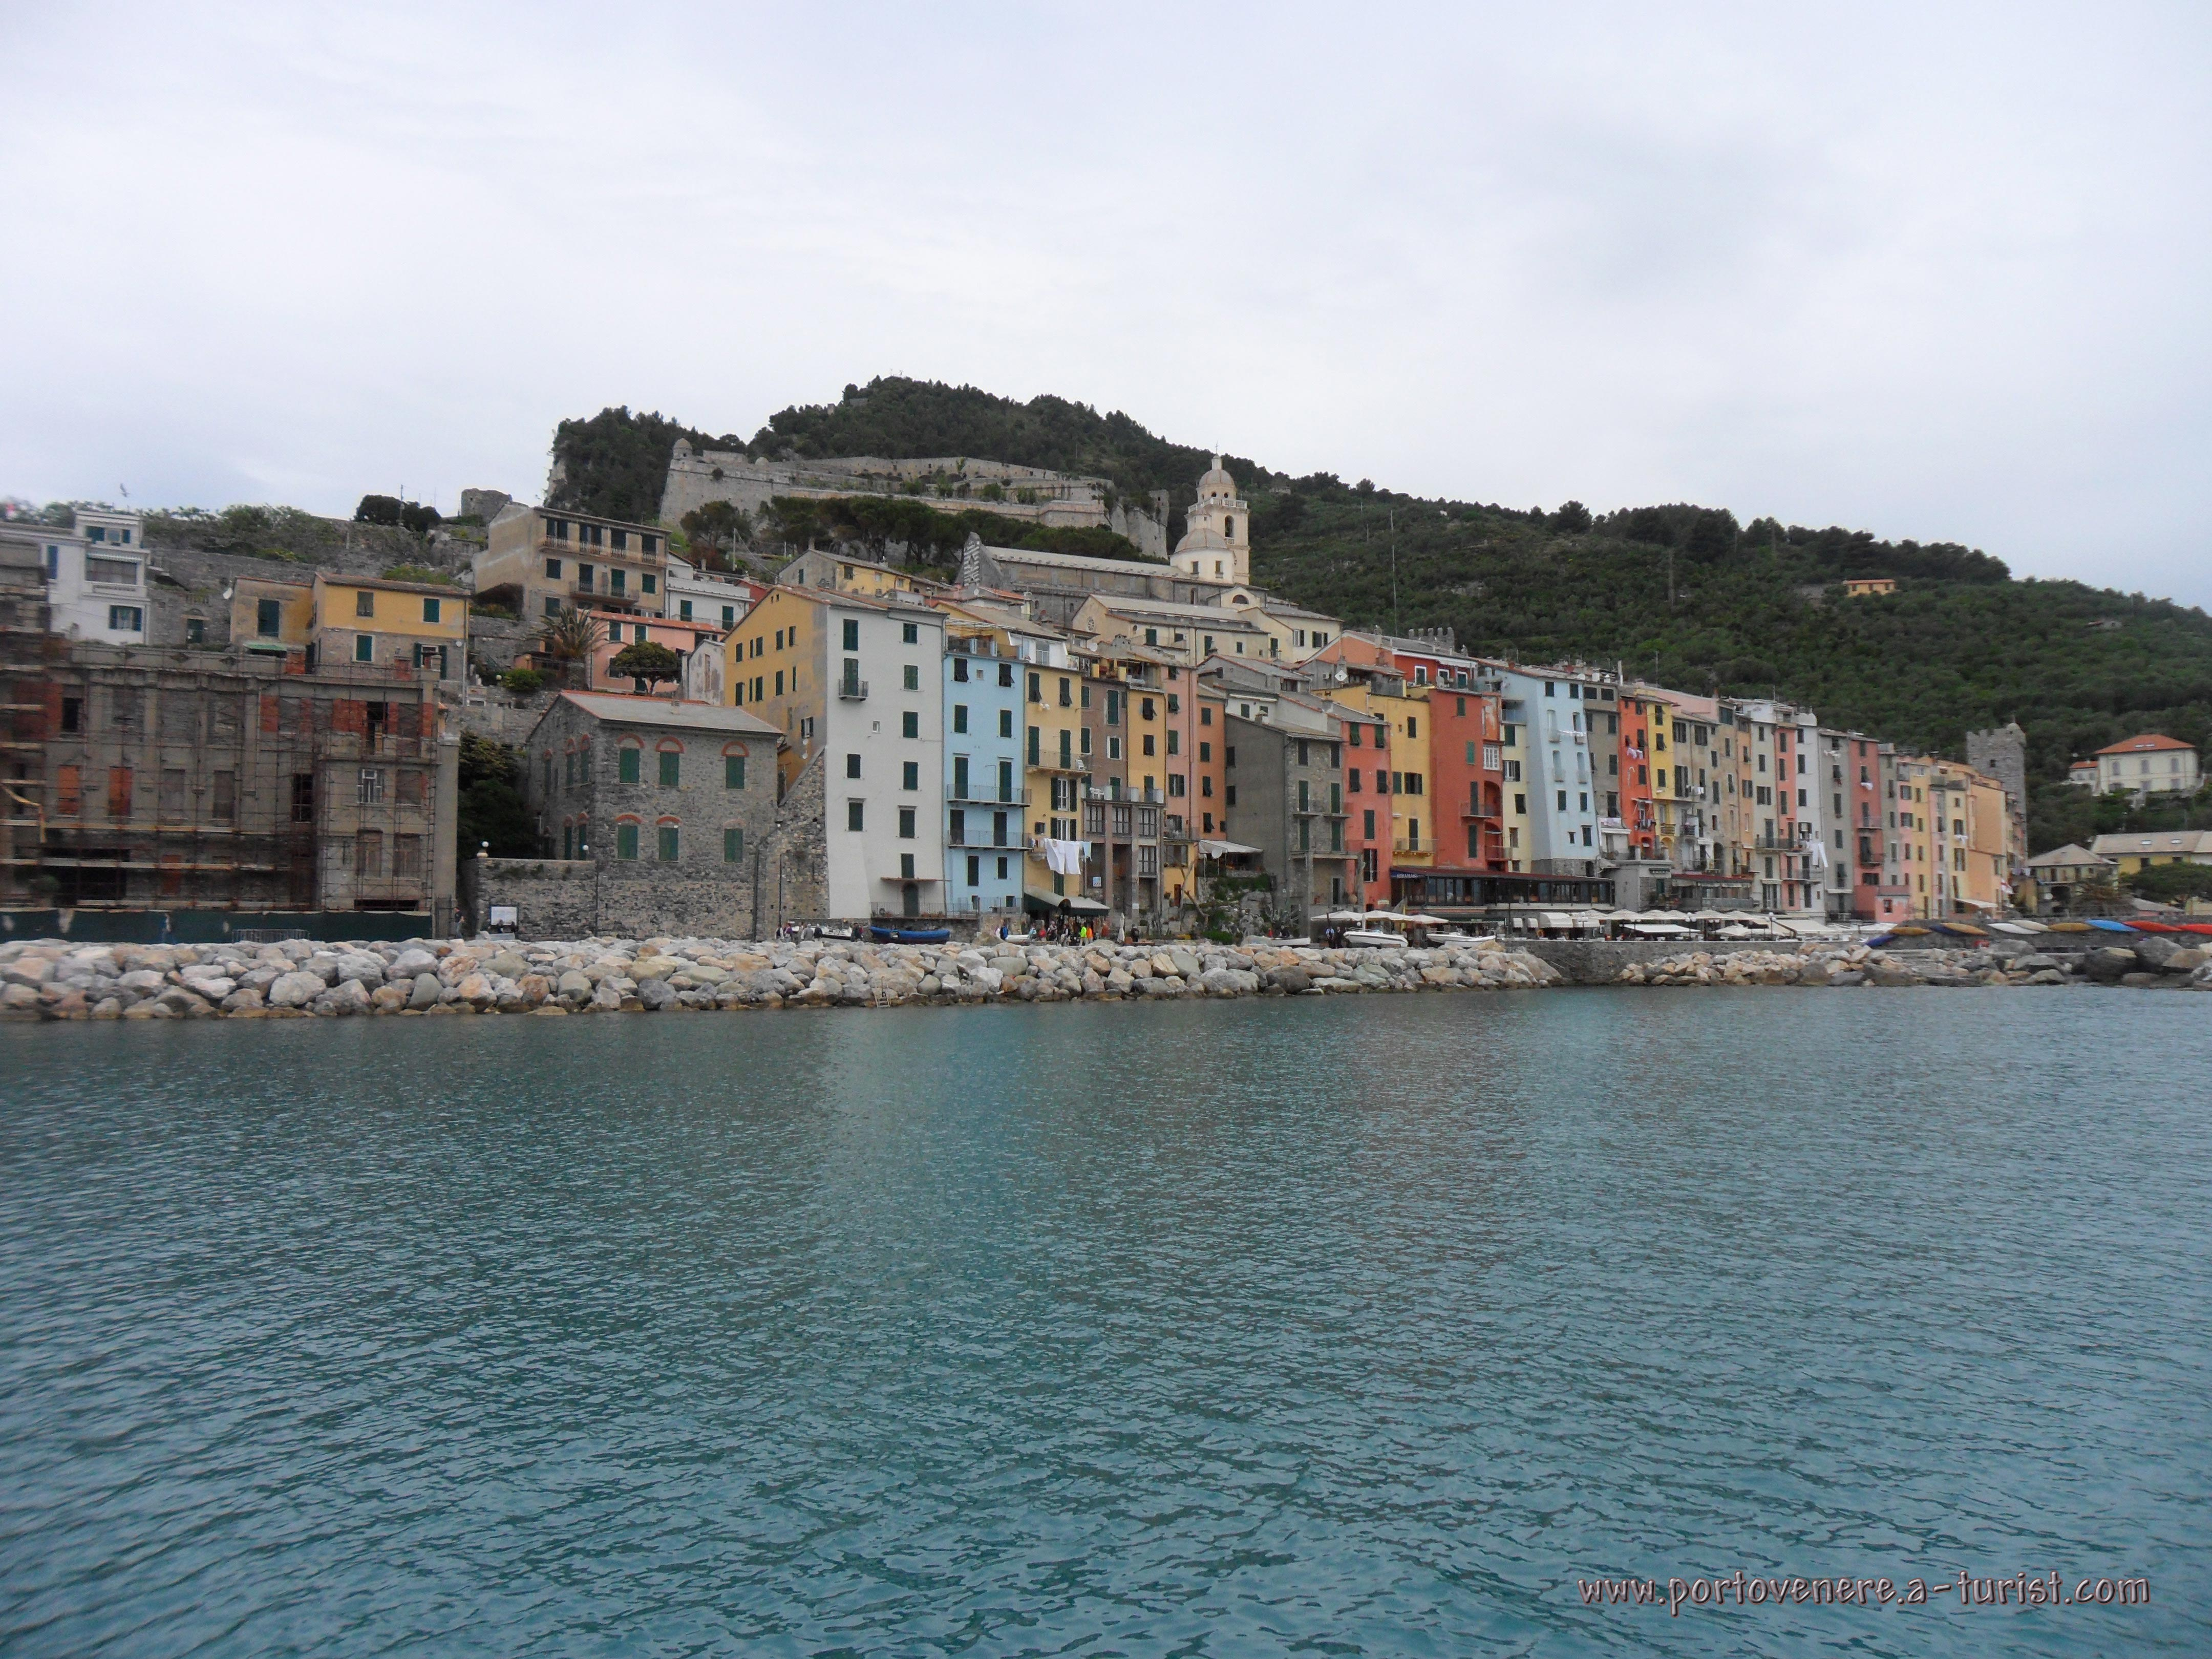 Portovenere - View from the boat<br>4320x3240, 1.75 MB